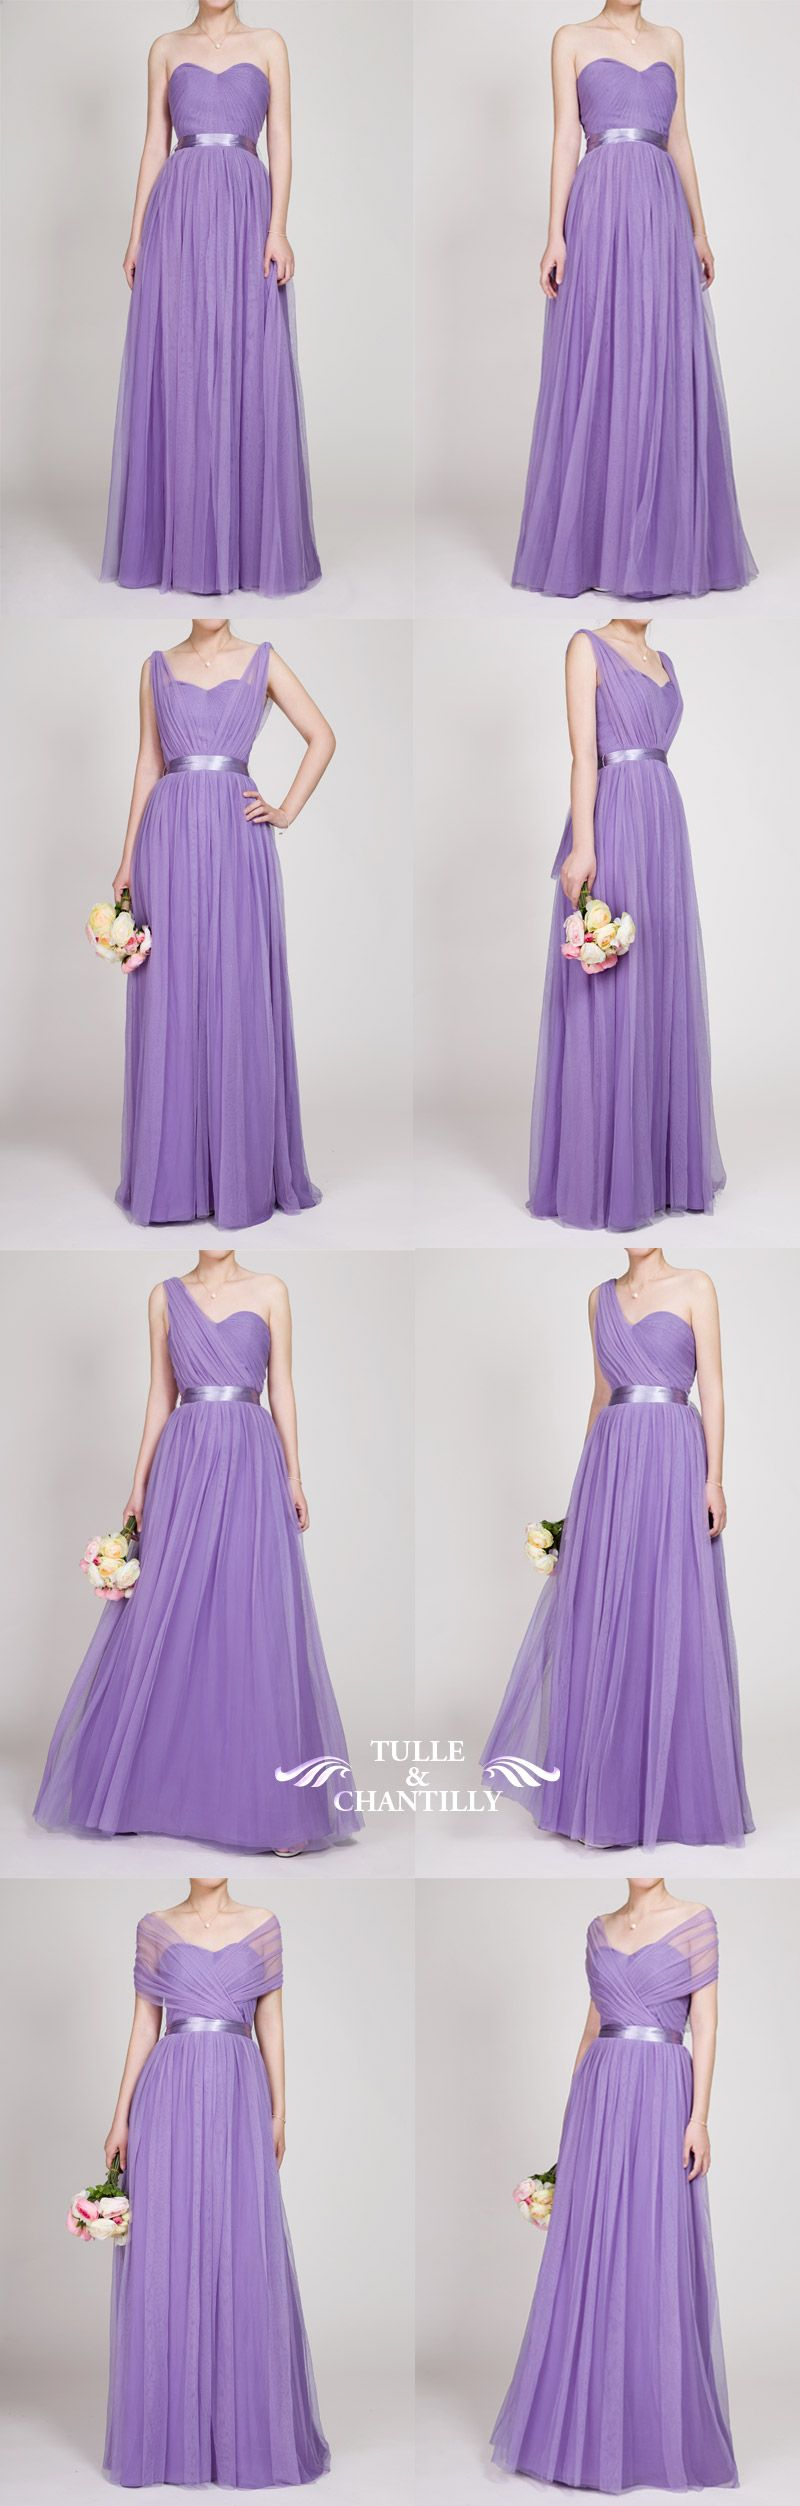 Tulle Convertible Multi-wear Bridesmaid Dress TBQP307 | Lilas, Damas ...